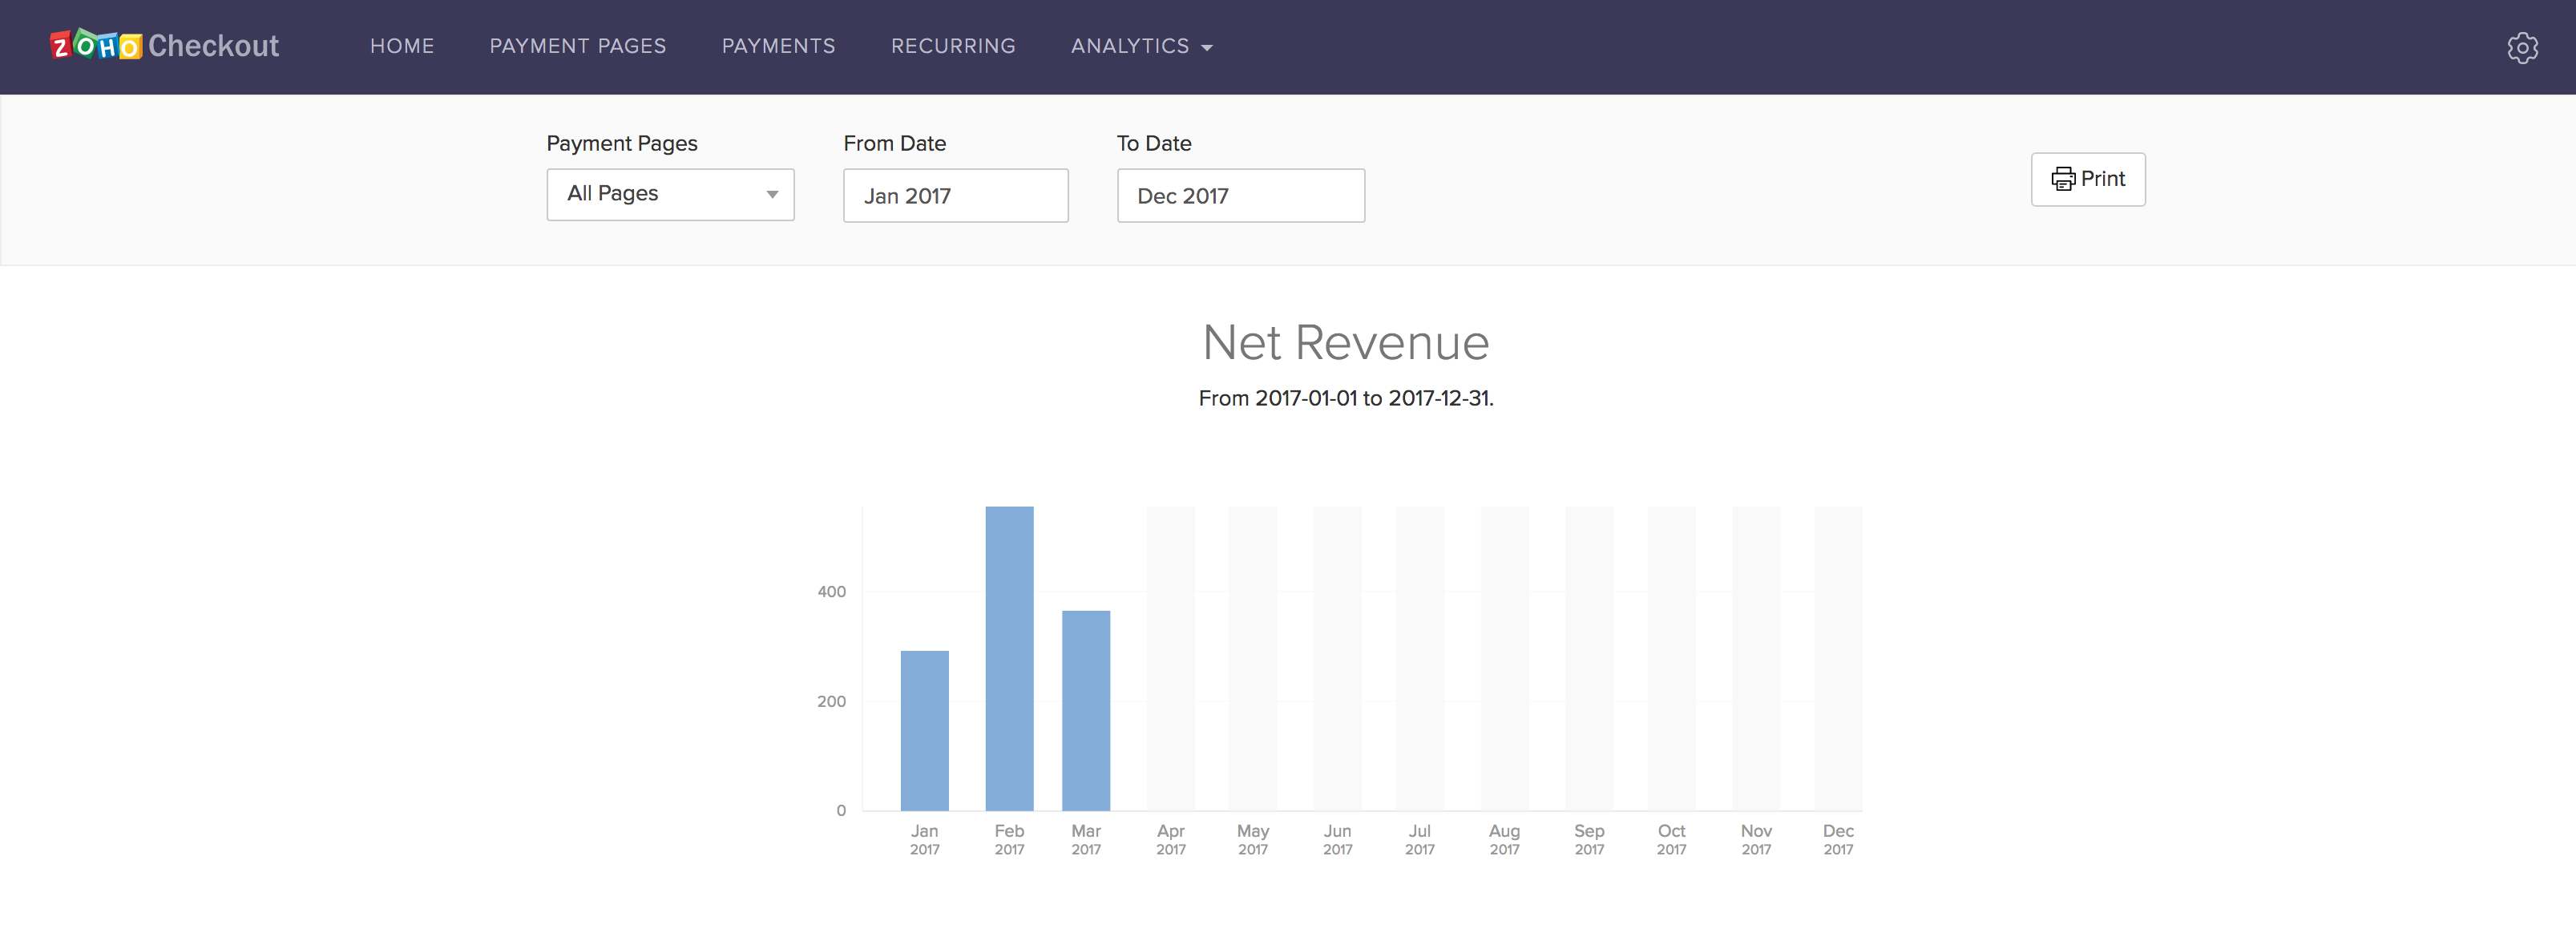 Net Revenue Image